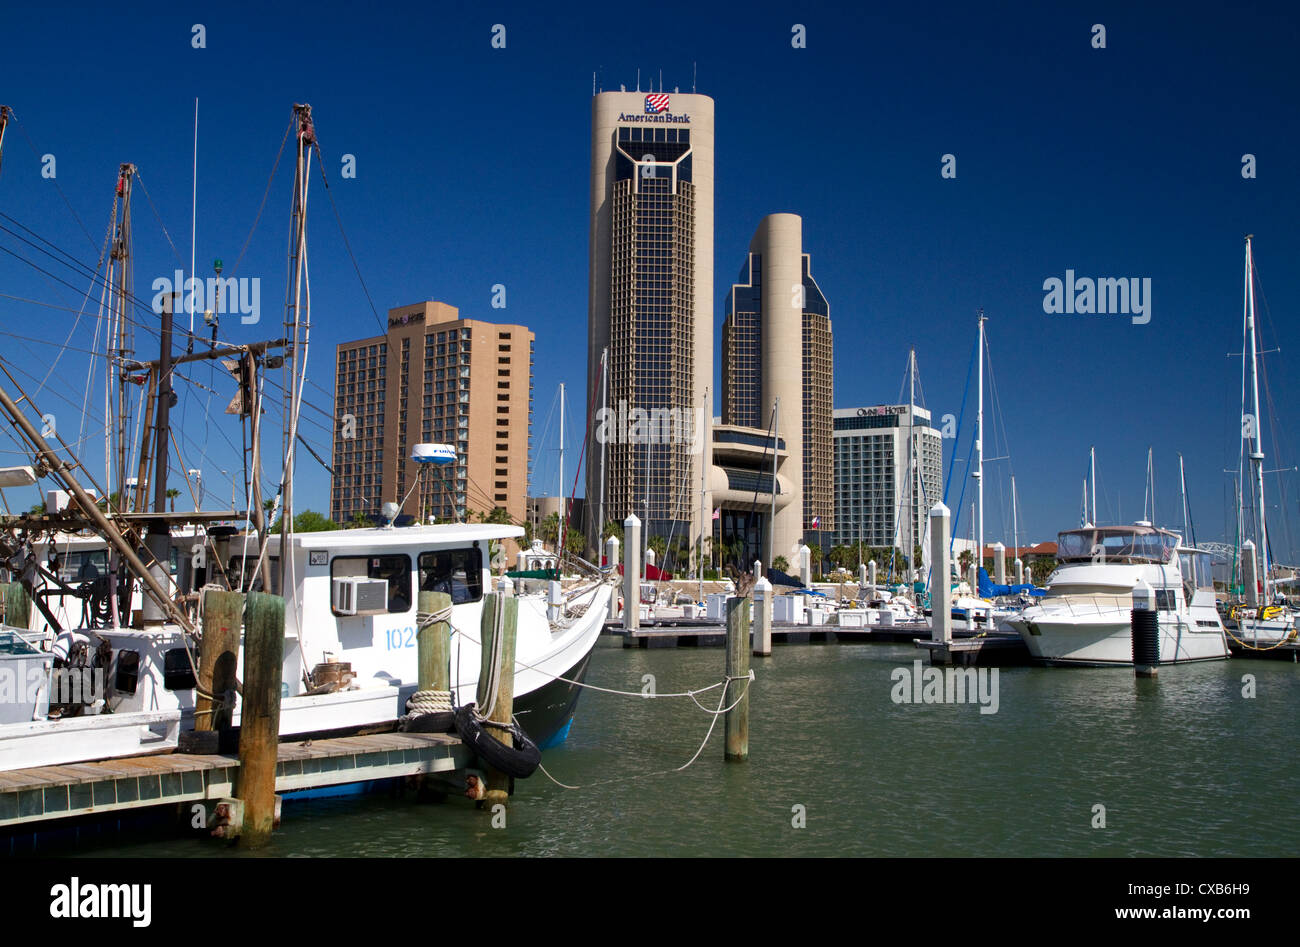 One Shoreline Plaza on the waterfront of Corpus Christi, Texas, USA. - Stock Image